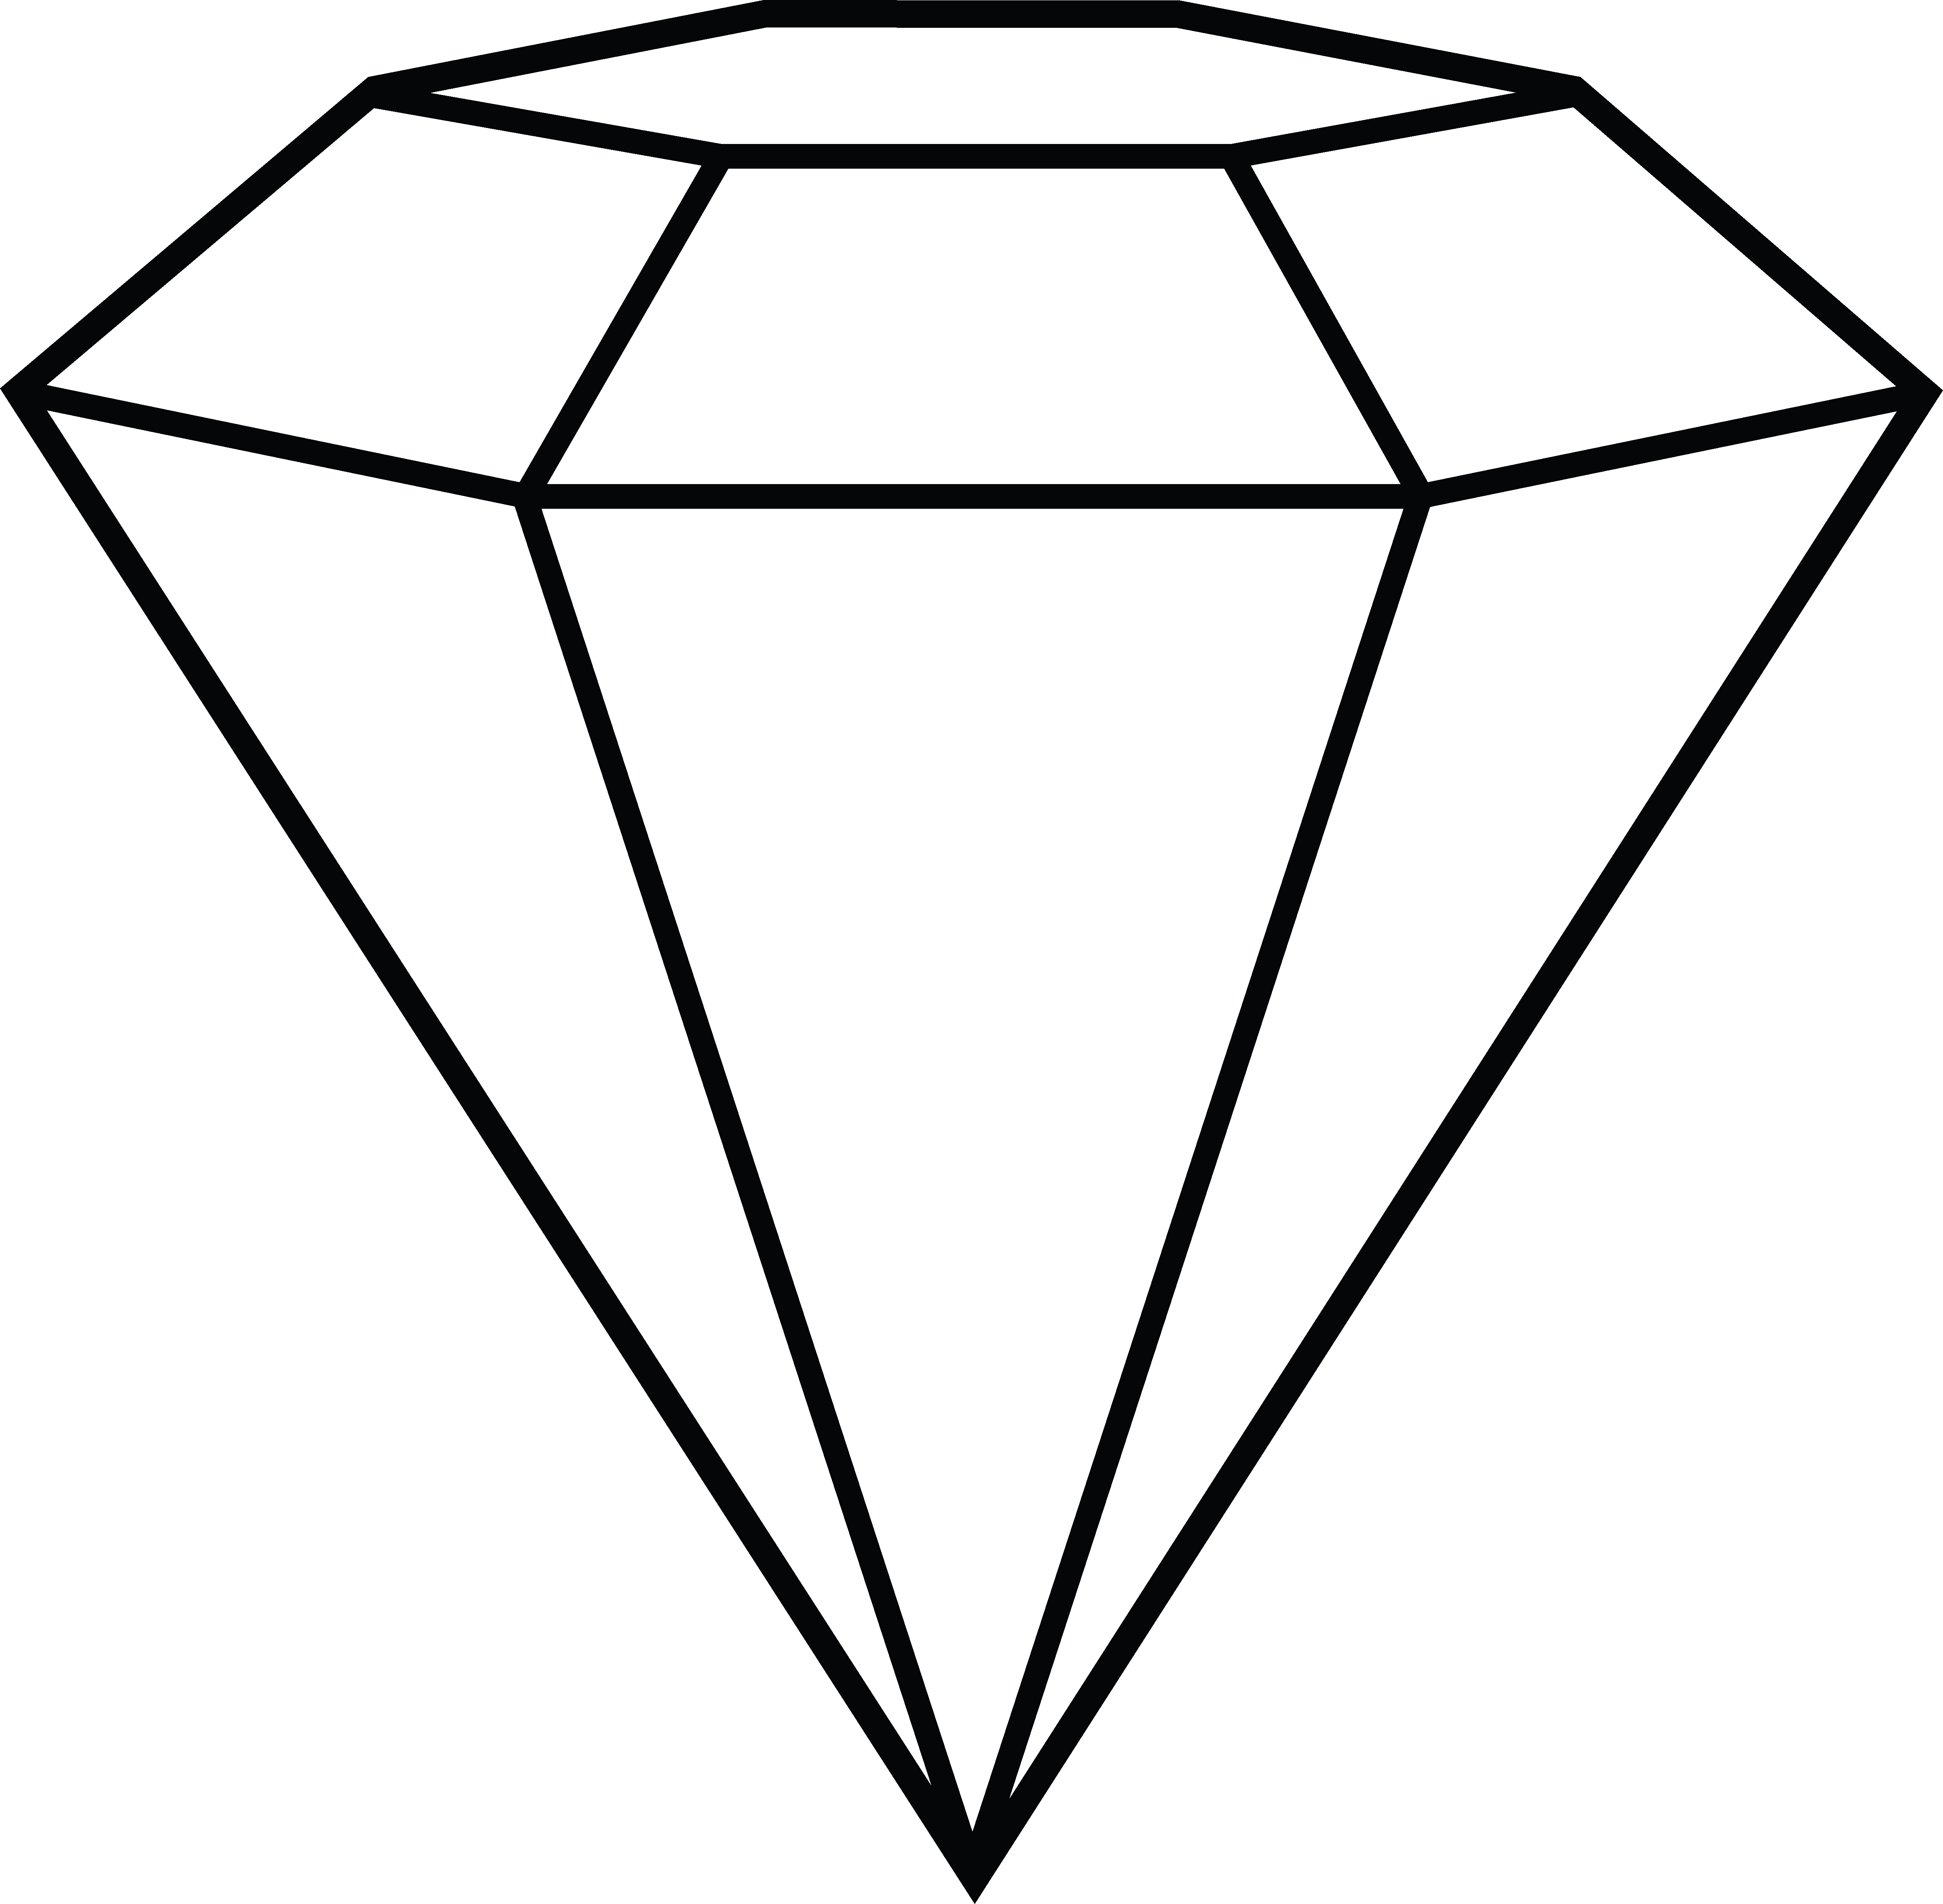 Diamond line art free clip art